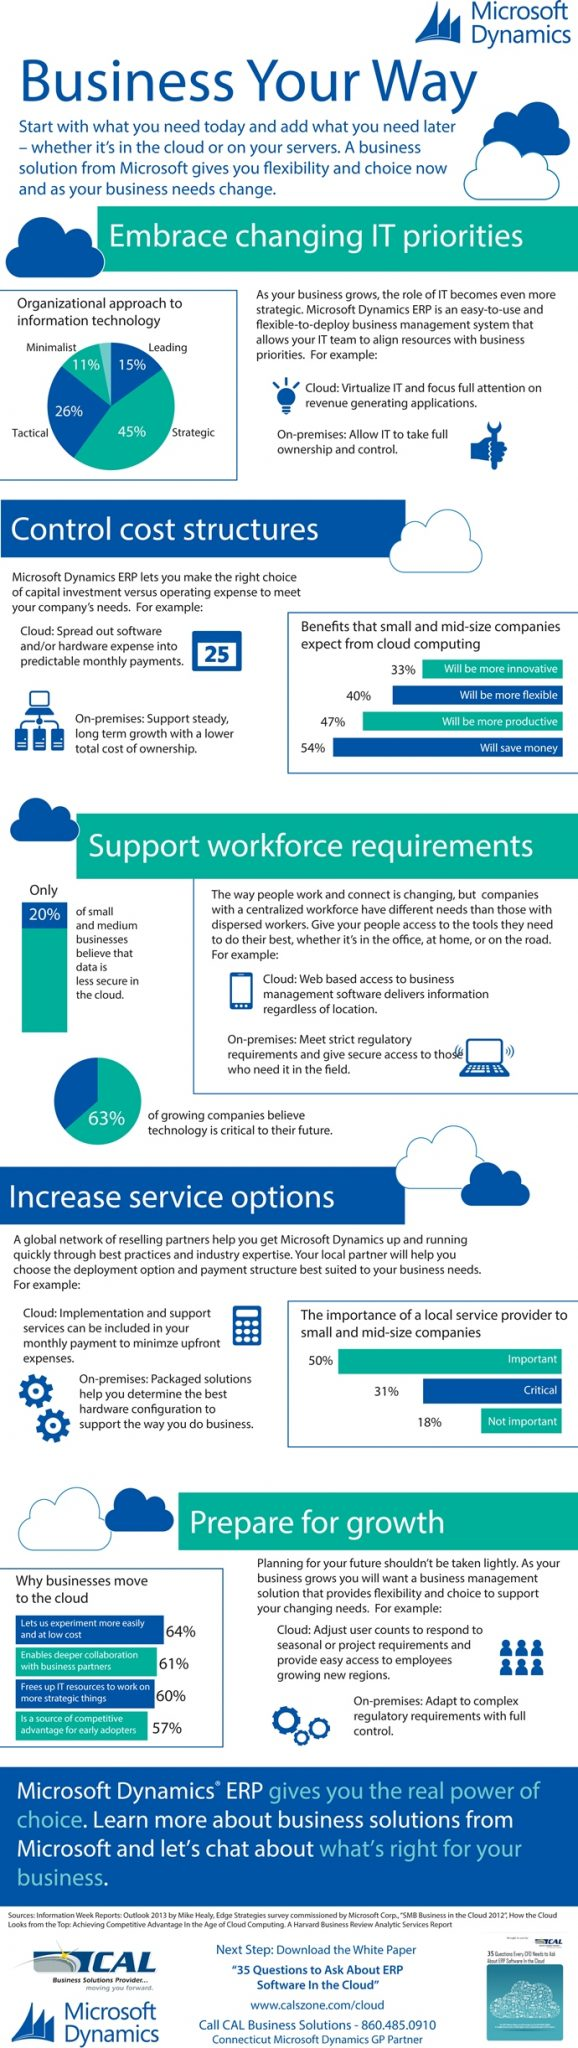 Infographic: Business Your Way With Microsoft Dynamics